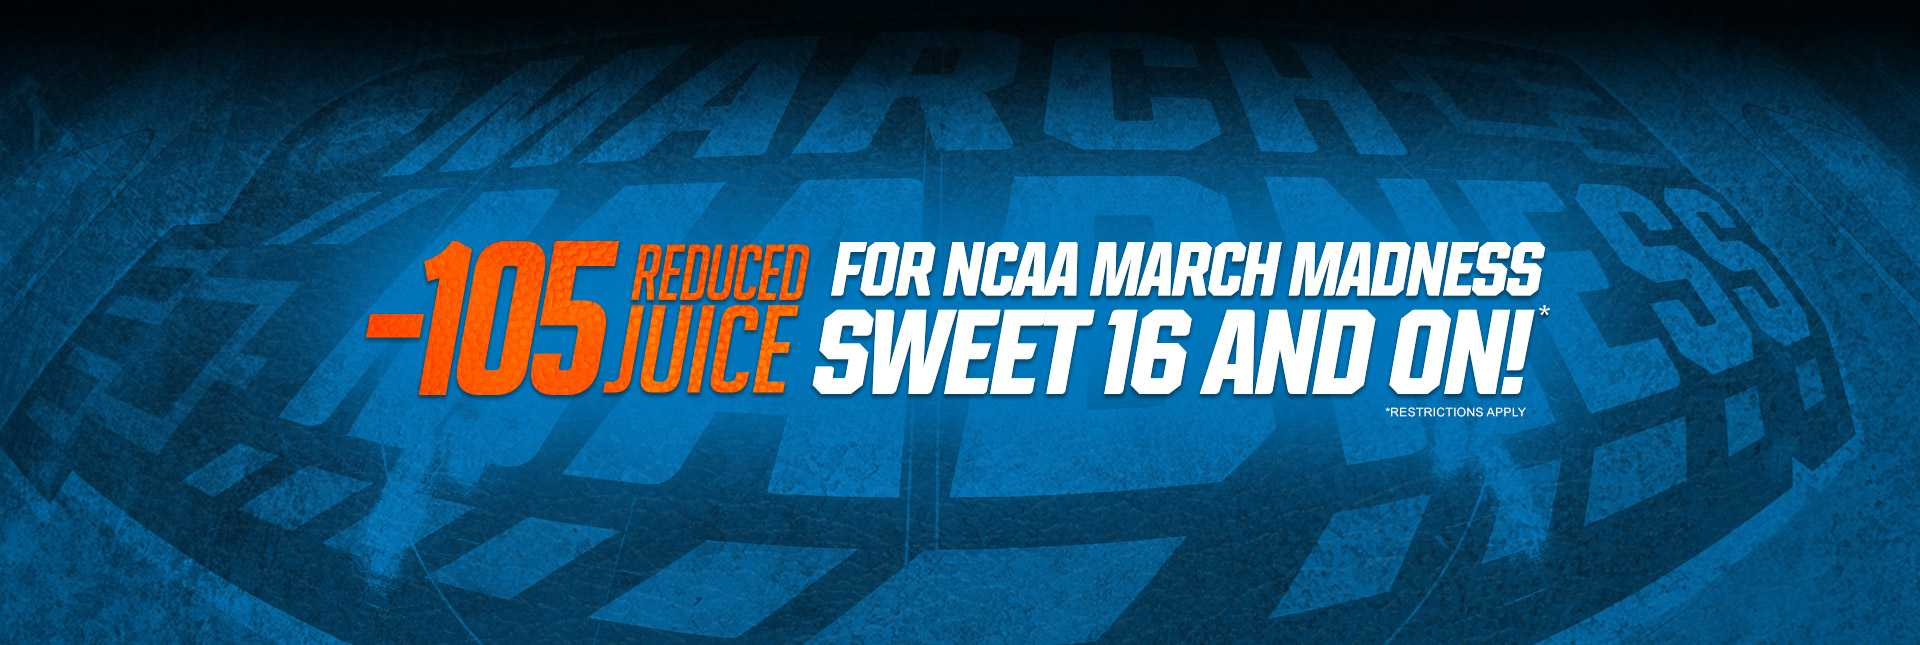 Reduced Juice March Madness